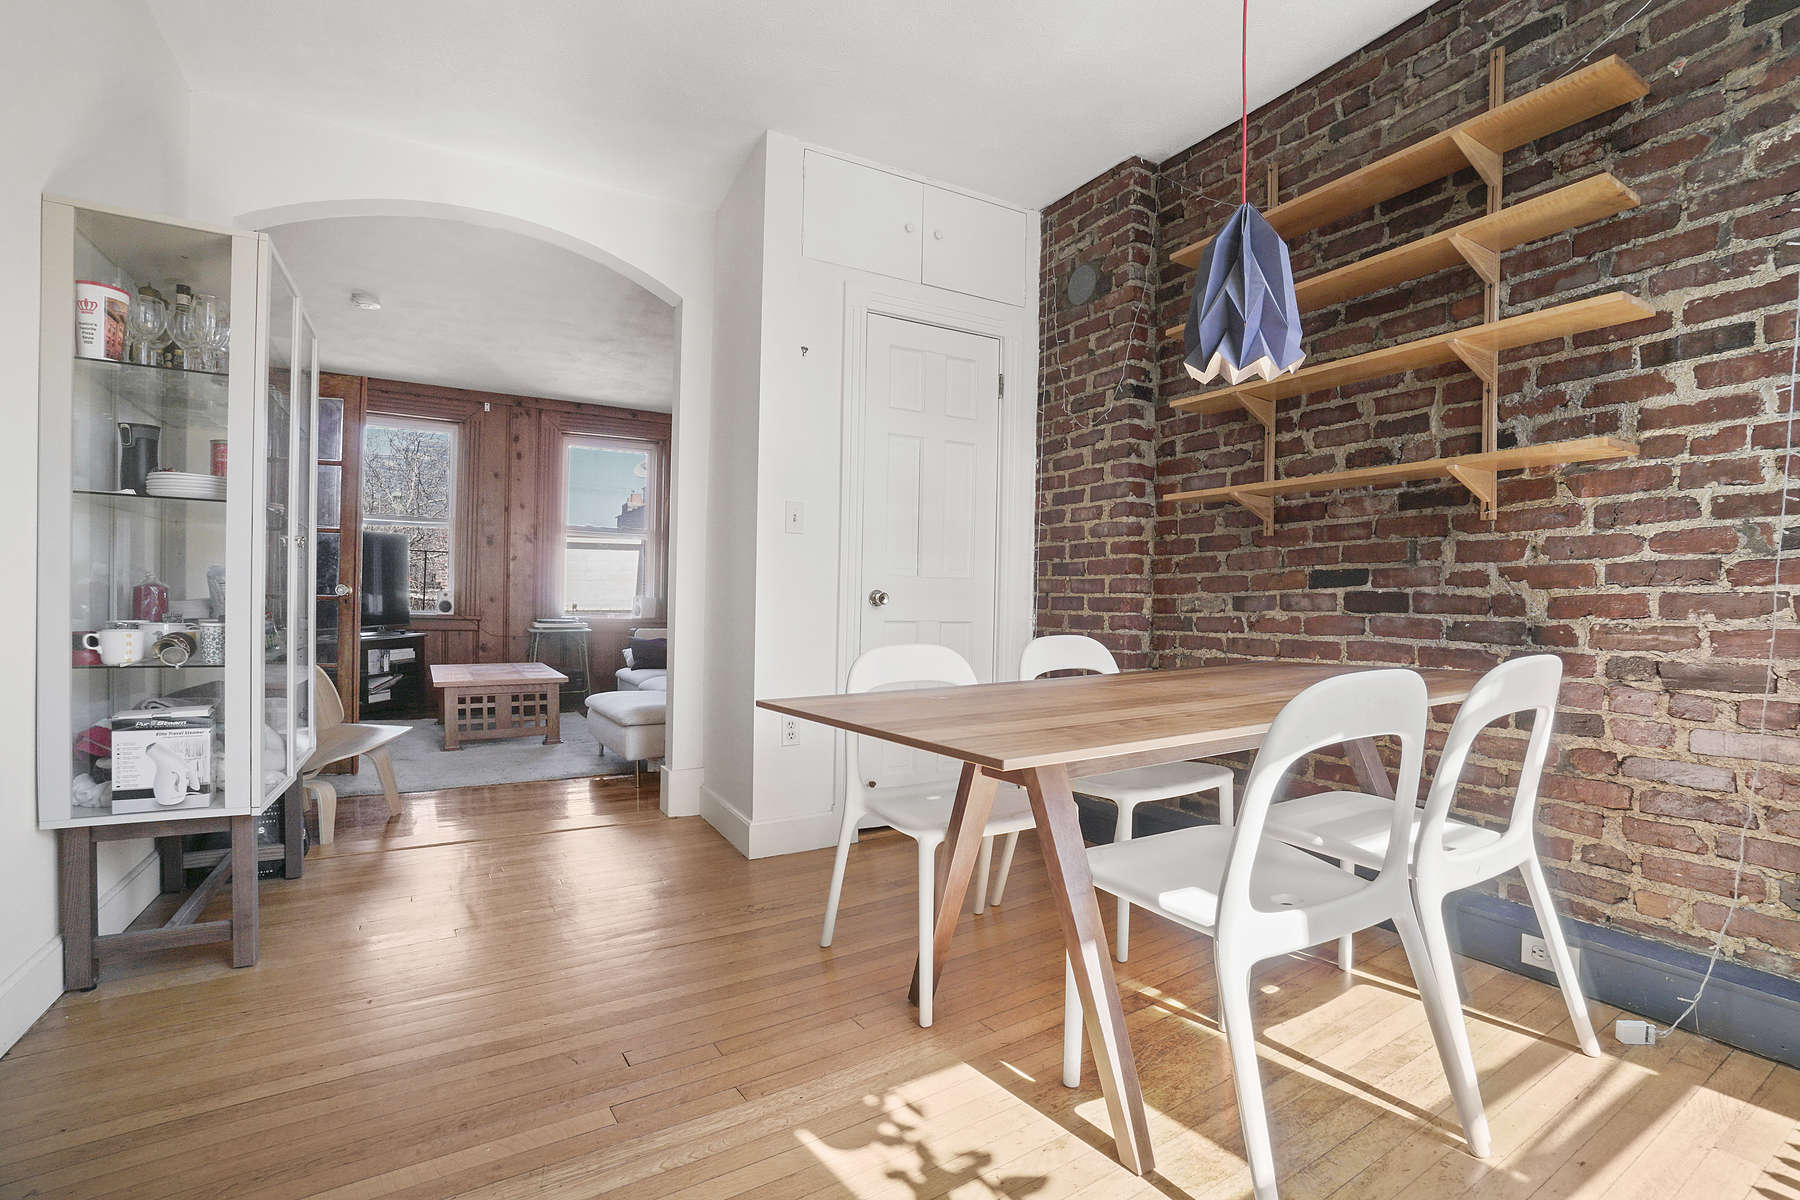 Condominium for Active at Charming One Bedroom With Exposed Brick 70 Revere St 9 Boston, Massachusetts 02114 United States